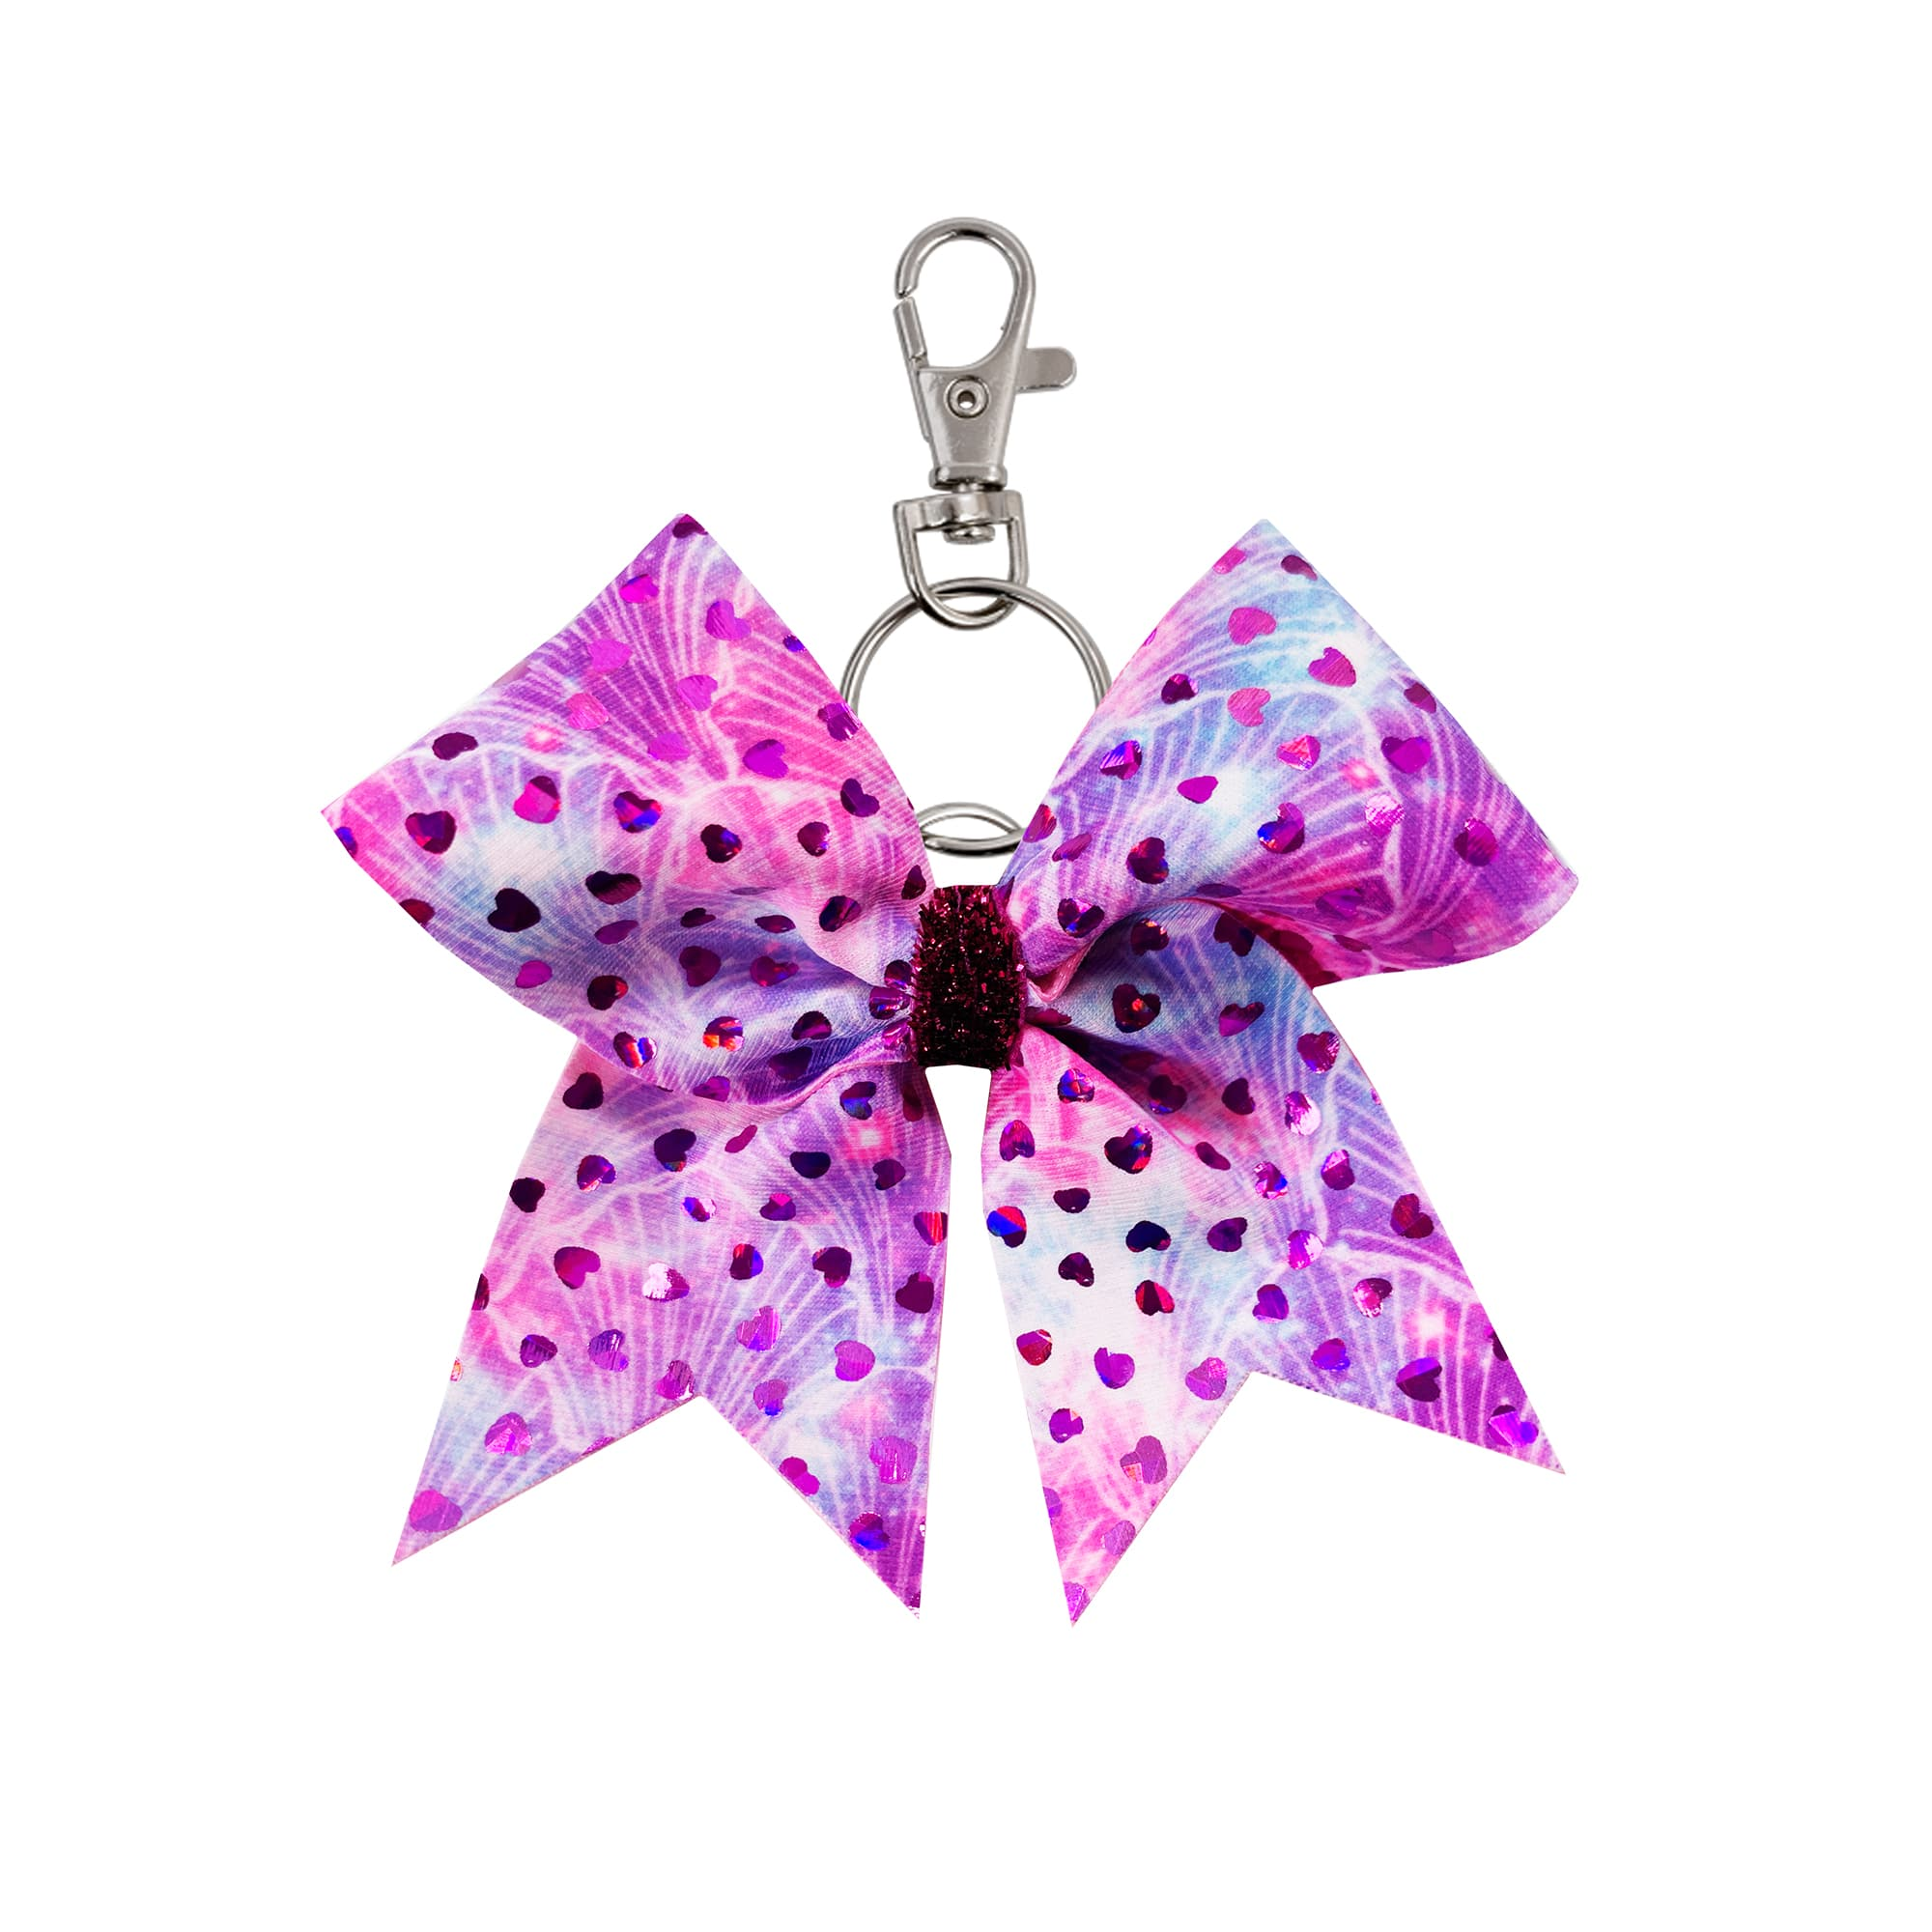 Heart Sprinkles hairbow keyring